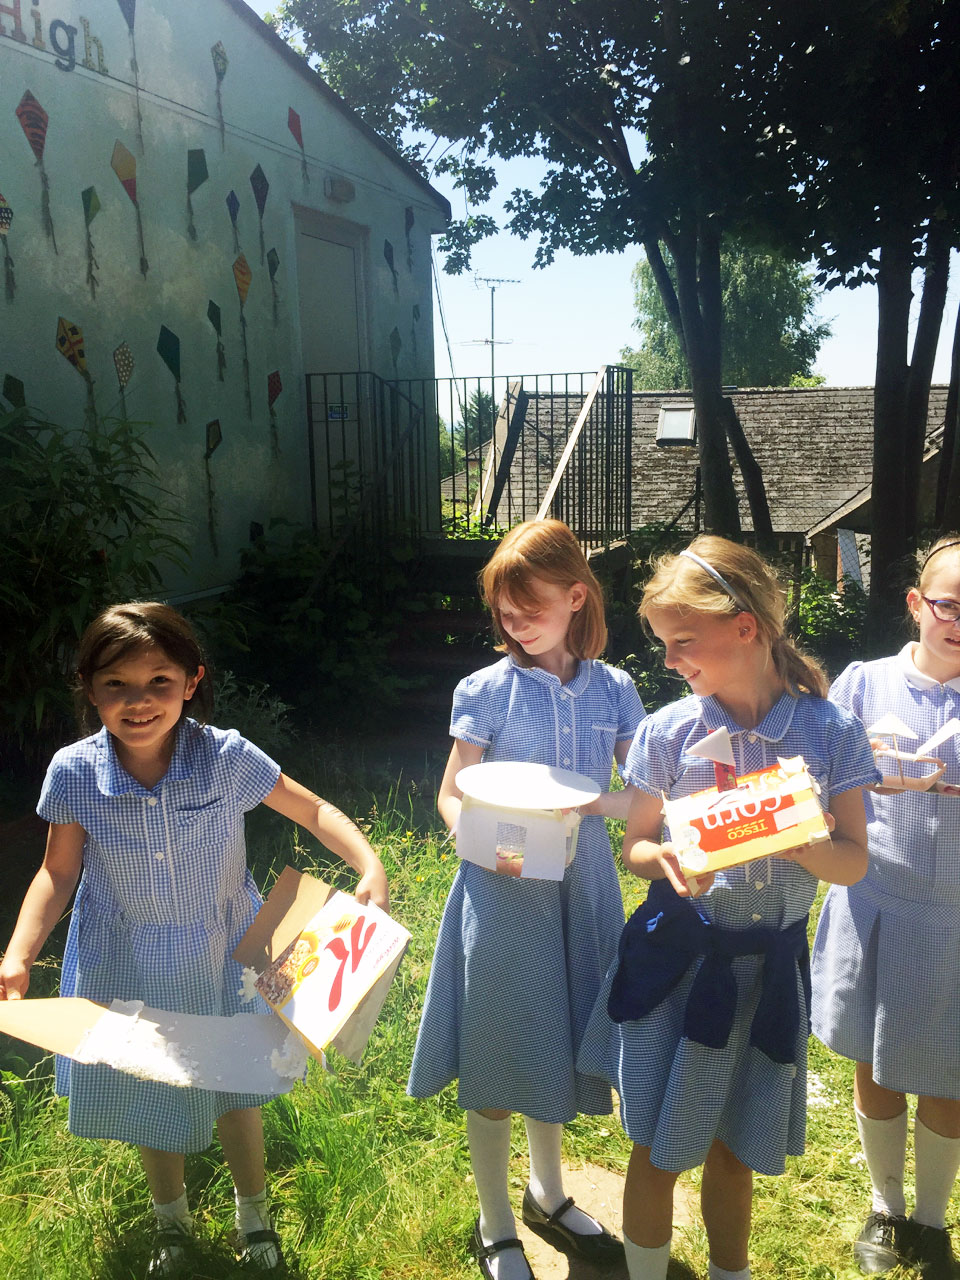 Girls displaying their UV shelters